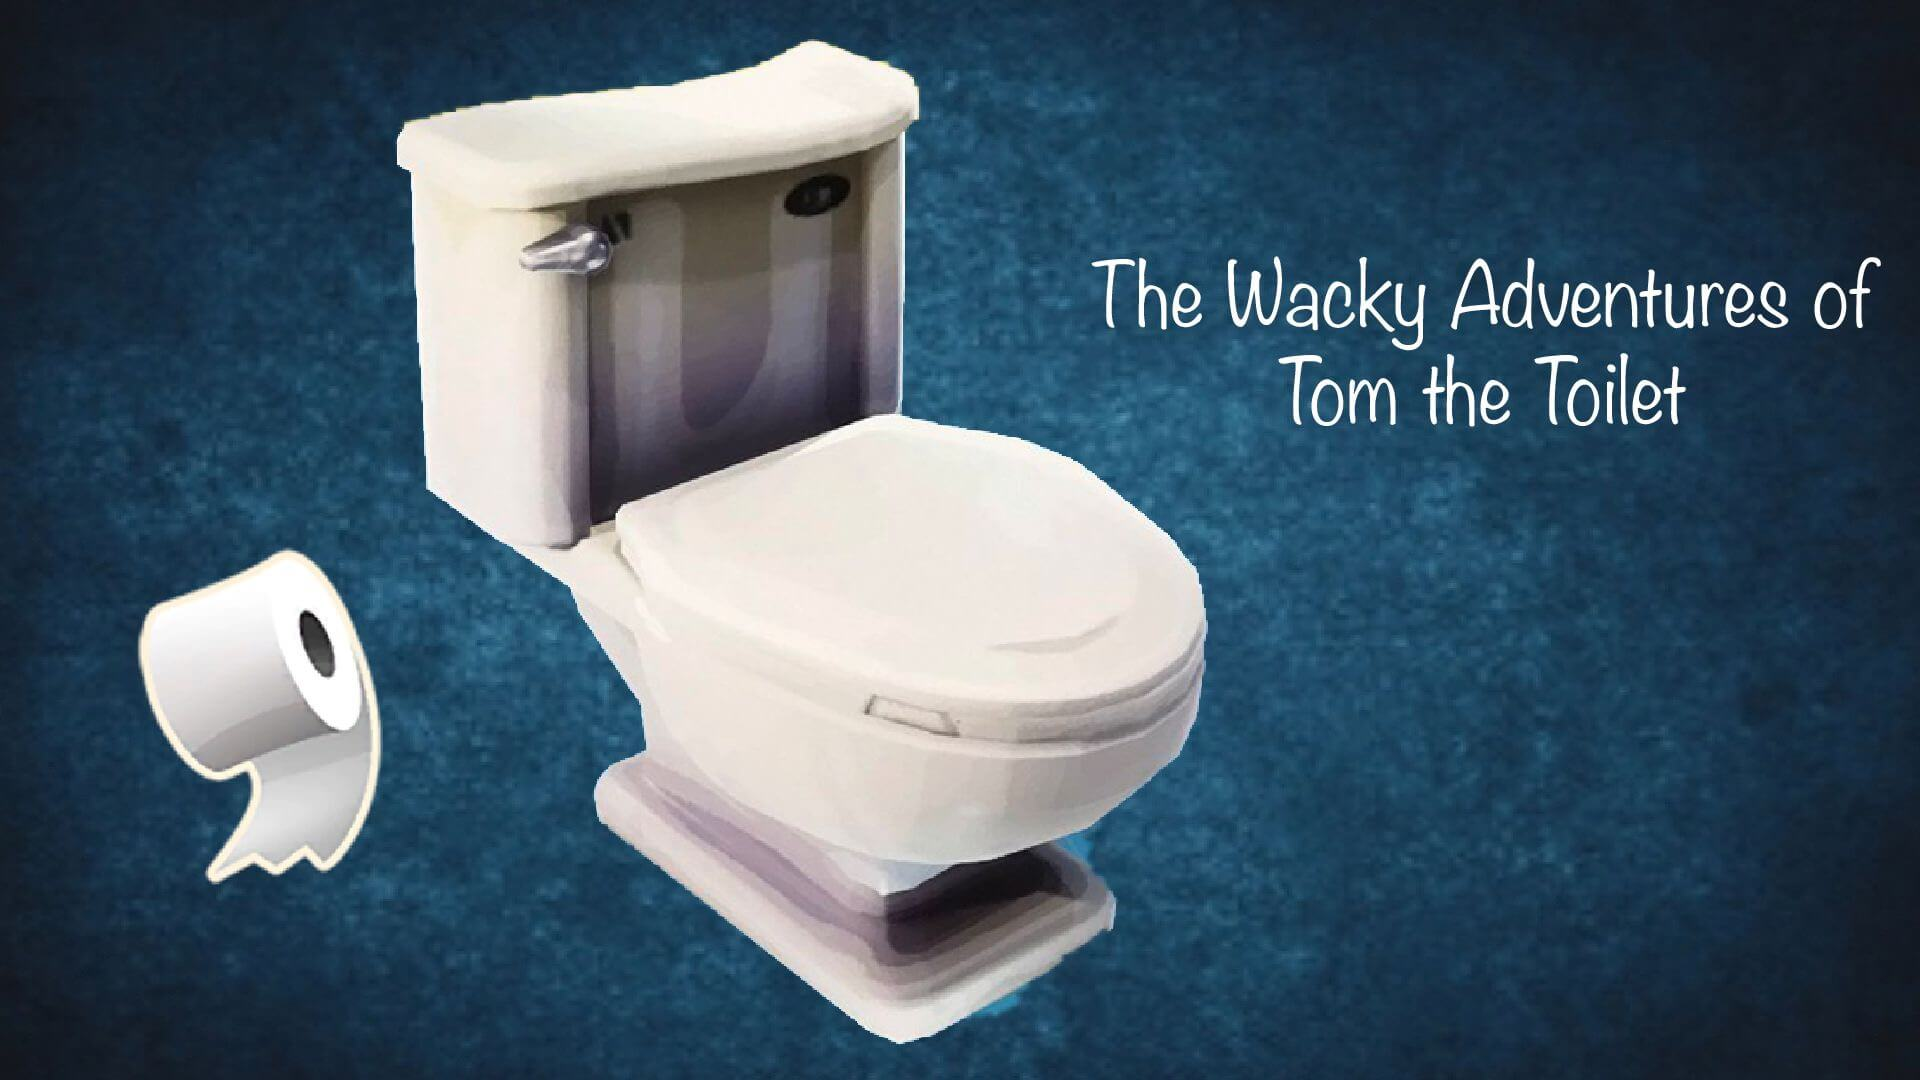 THE WACKY ADVENTURES OF TOM THE TOILET